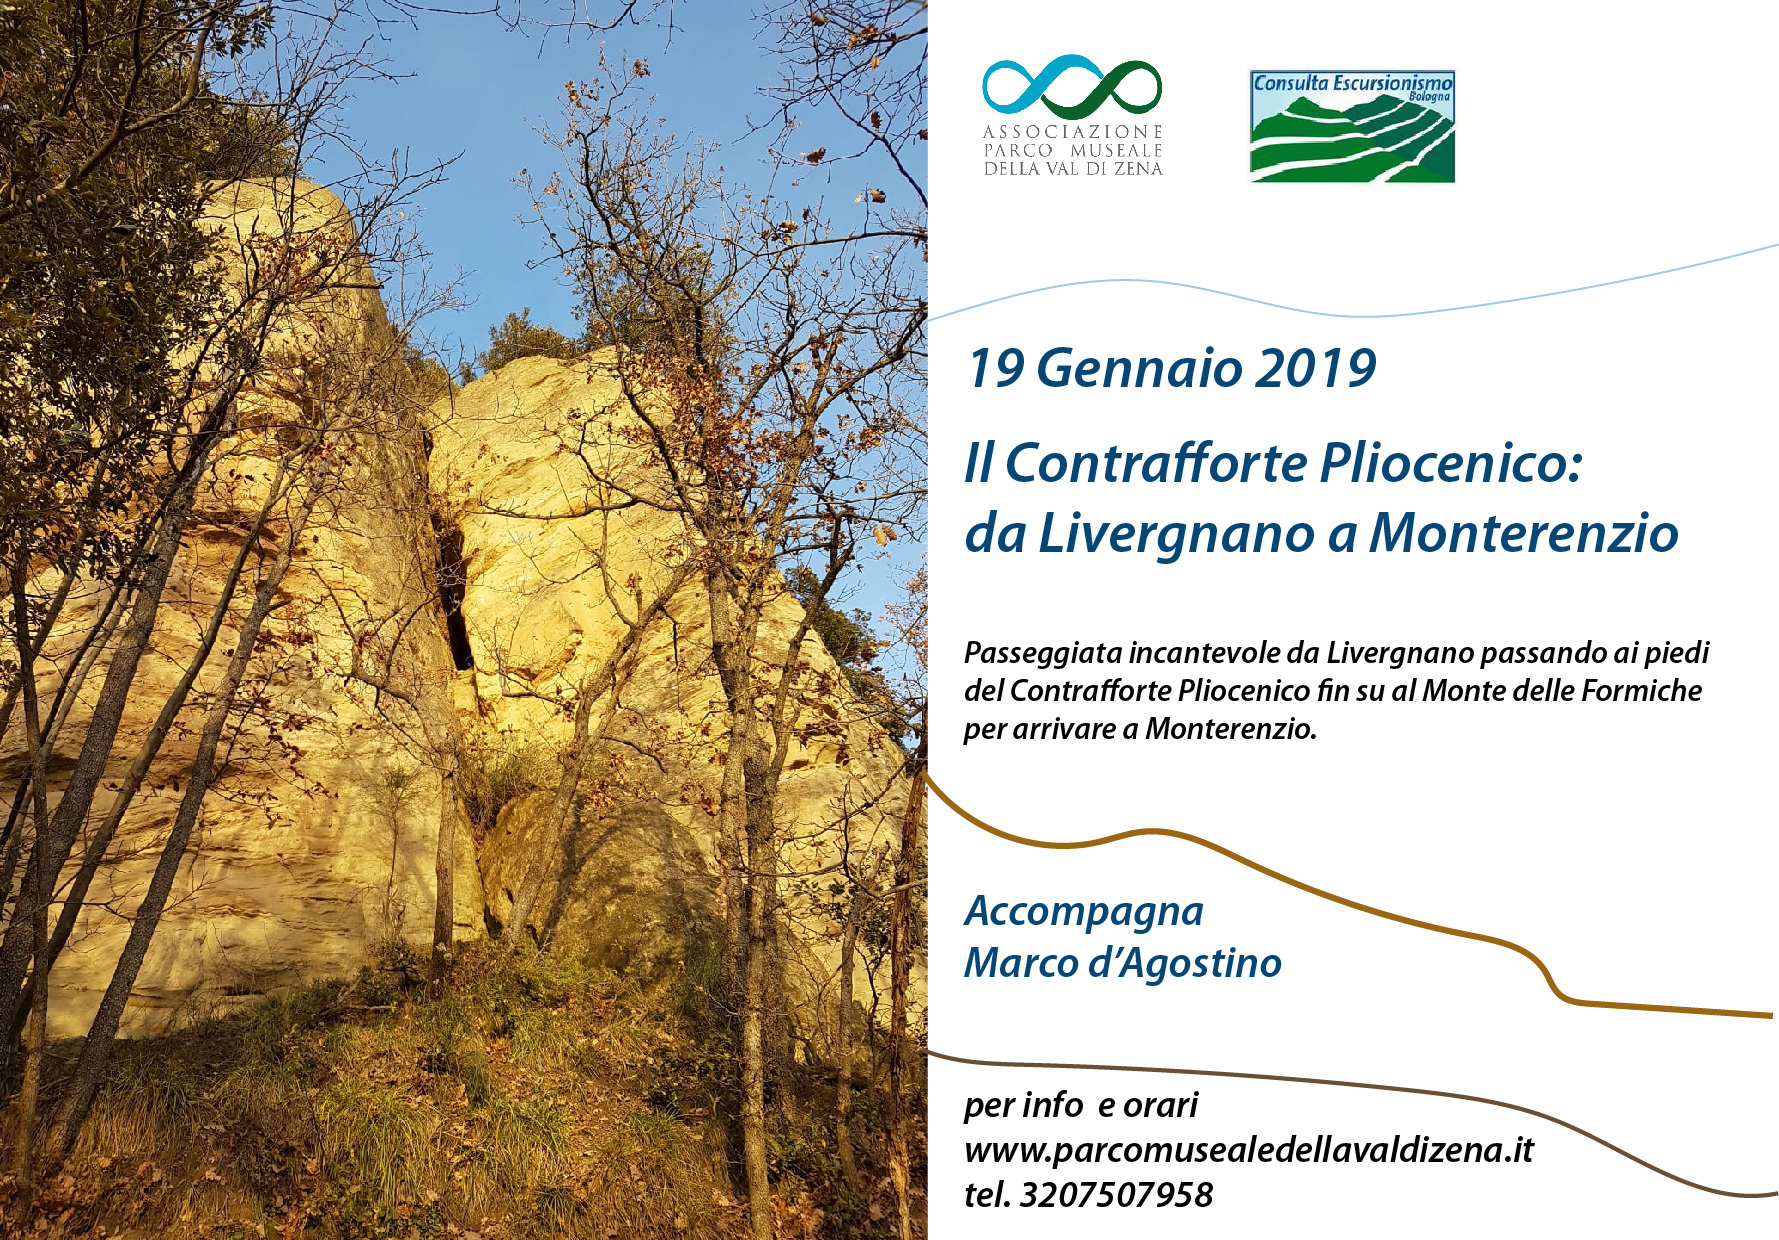 19 Gennaio 2019 — Il Contrafforte Pliocenico: da Livergnano a Monterenzio